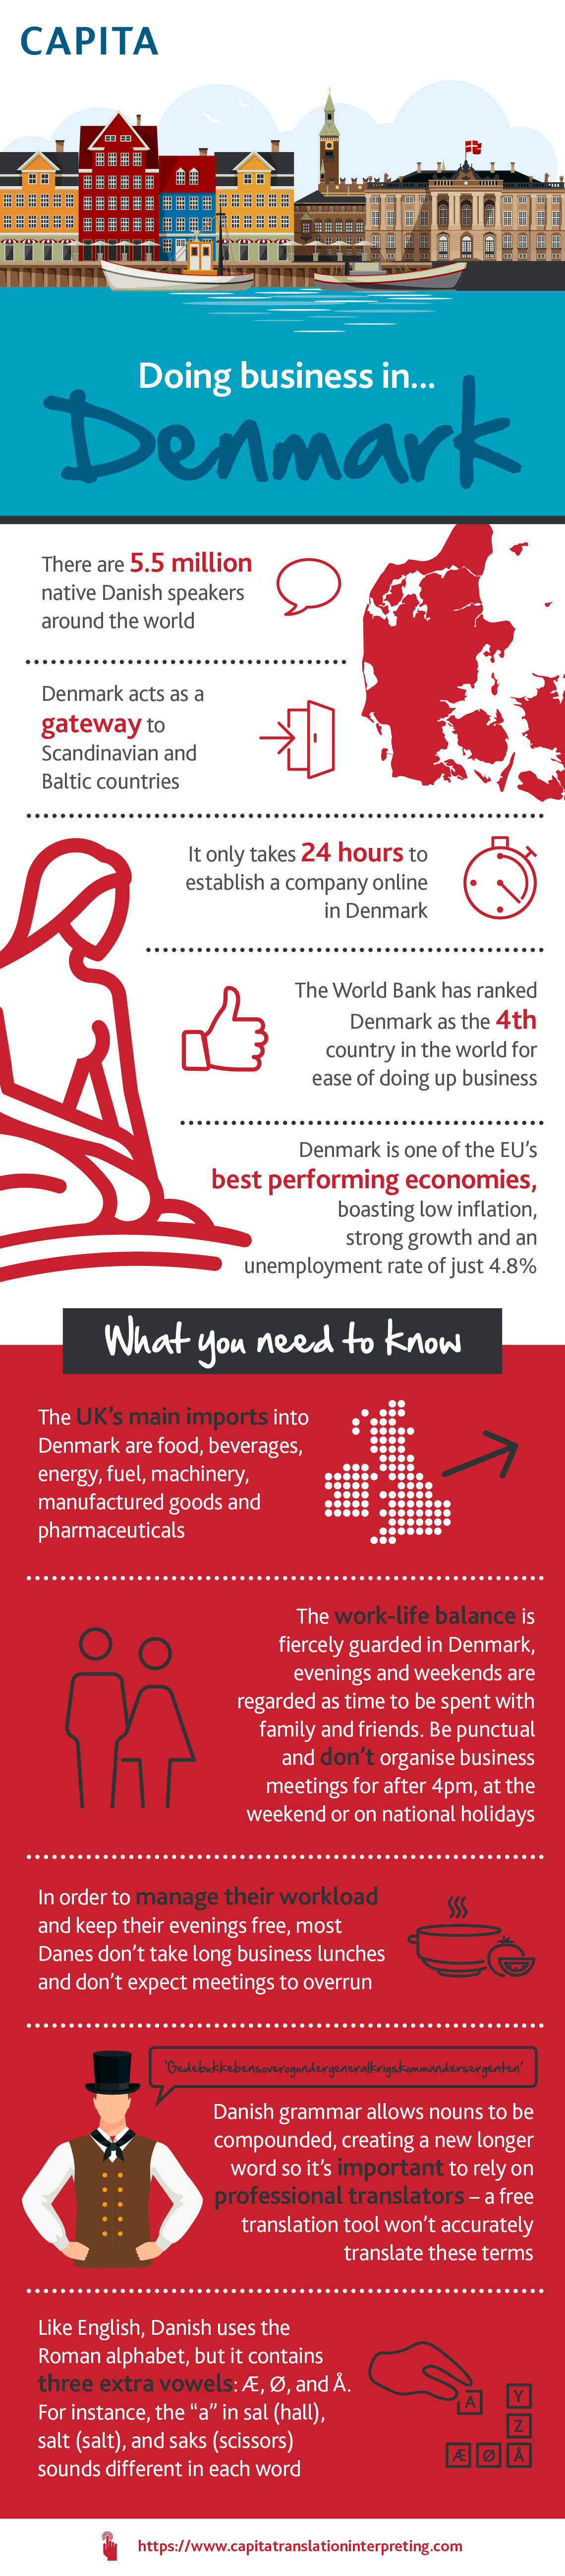 capita ti doing business in denmark 1140 - Why you should be doing business in Denmark